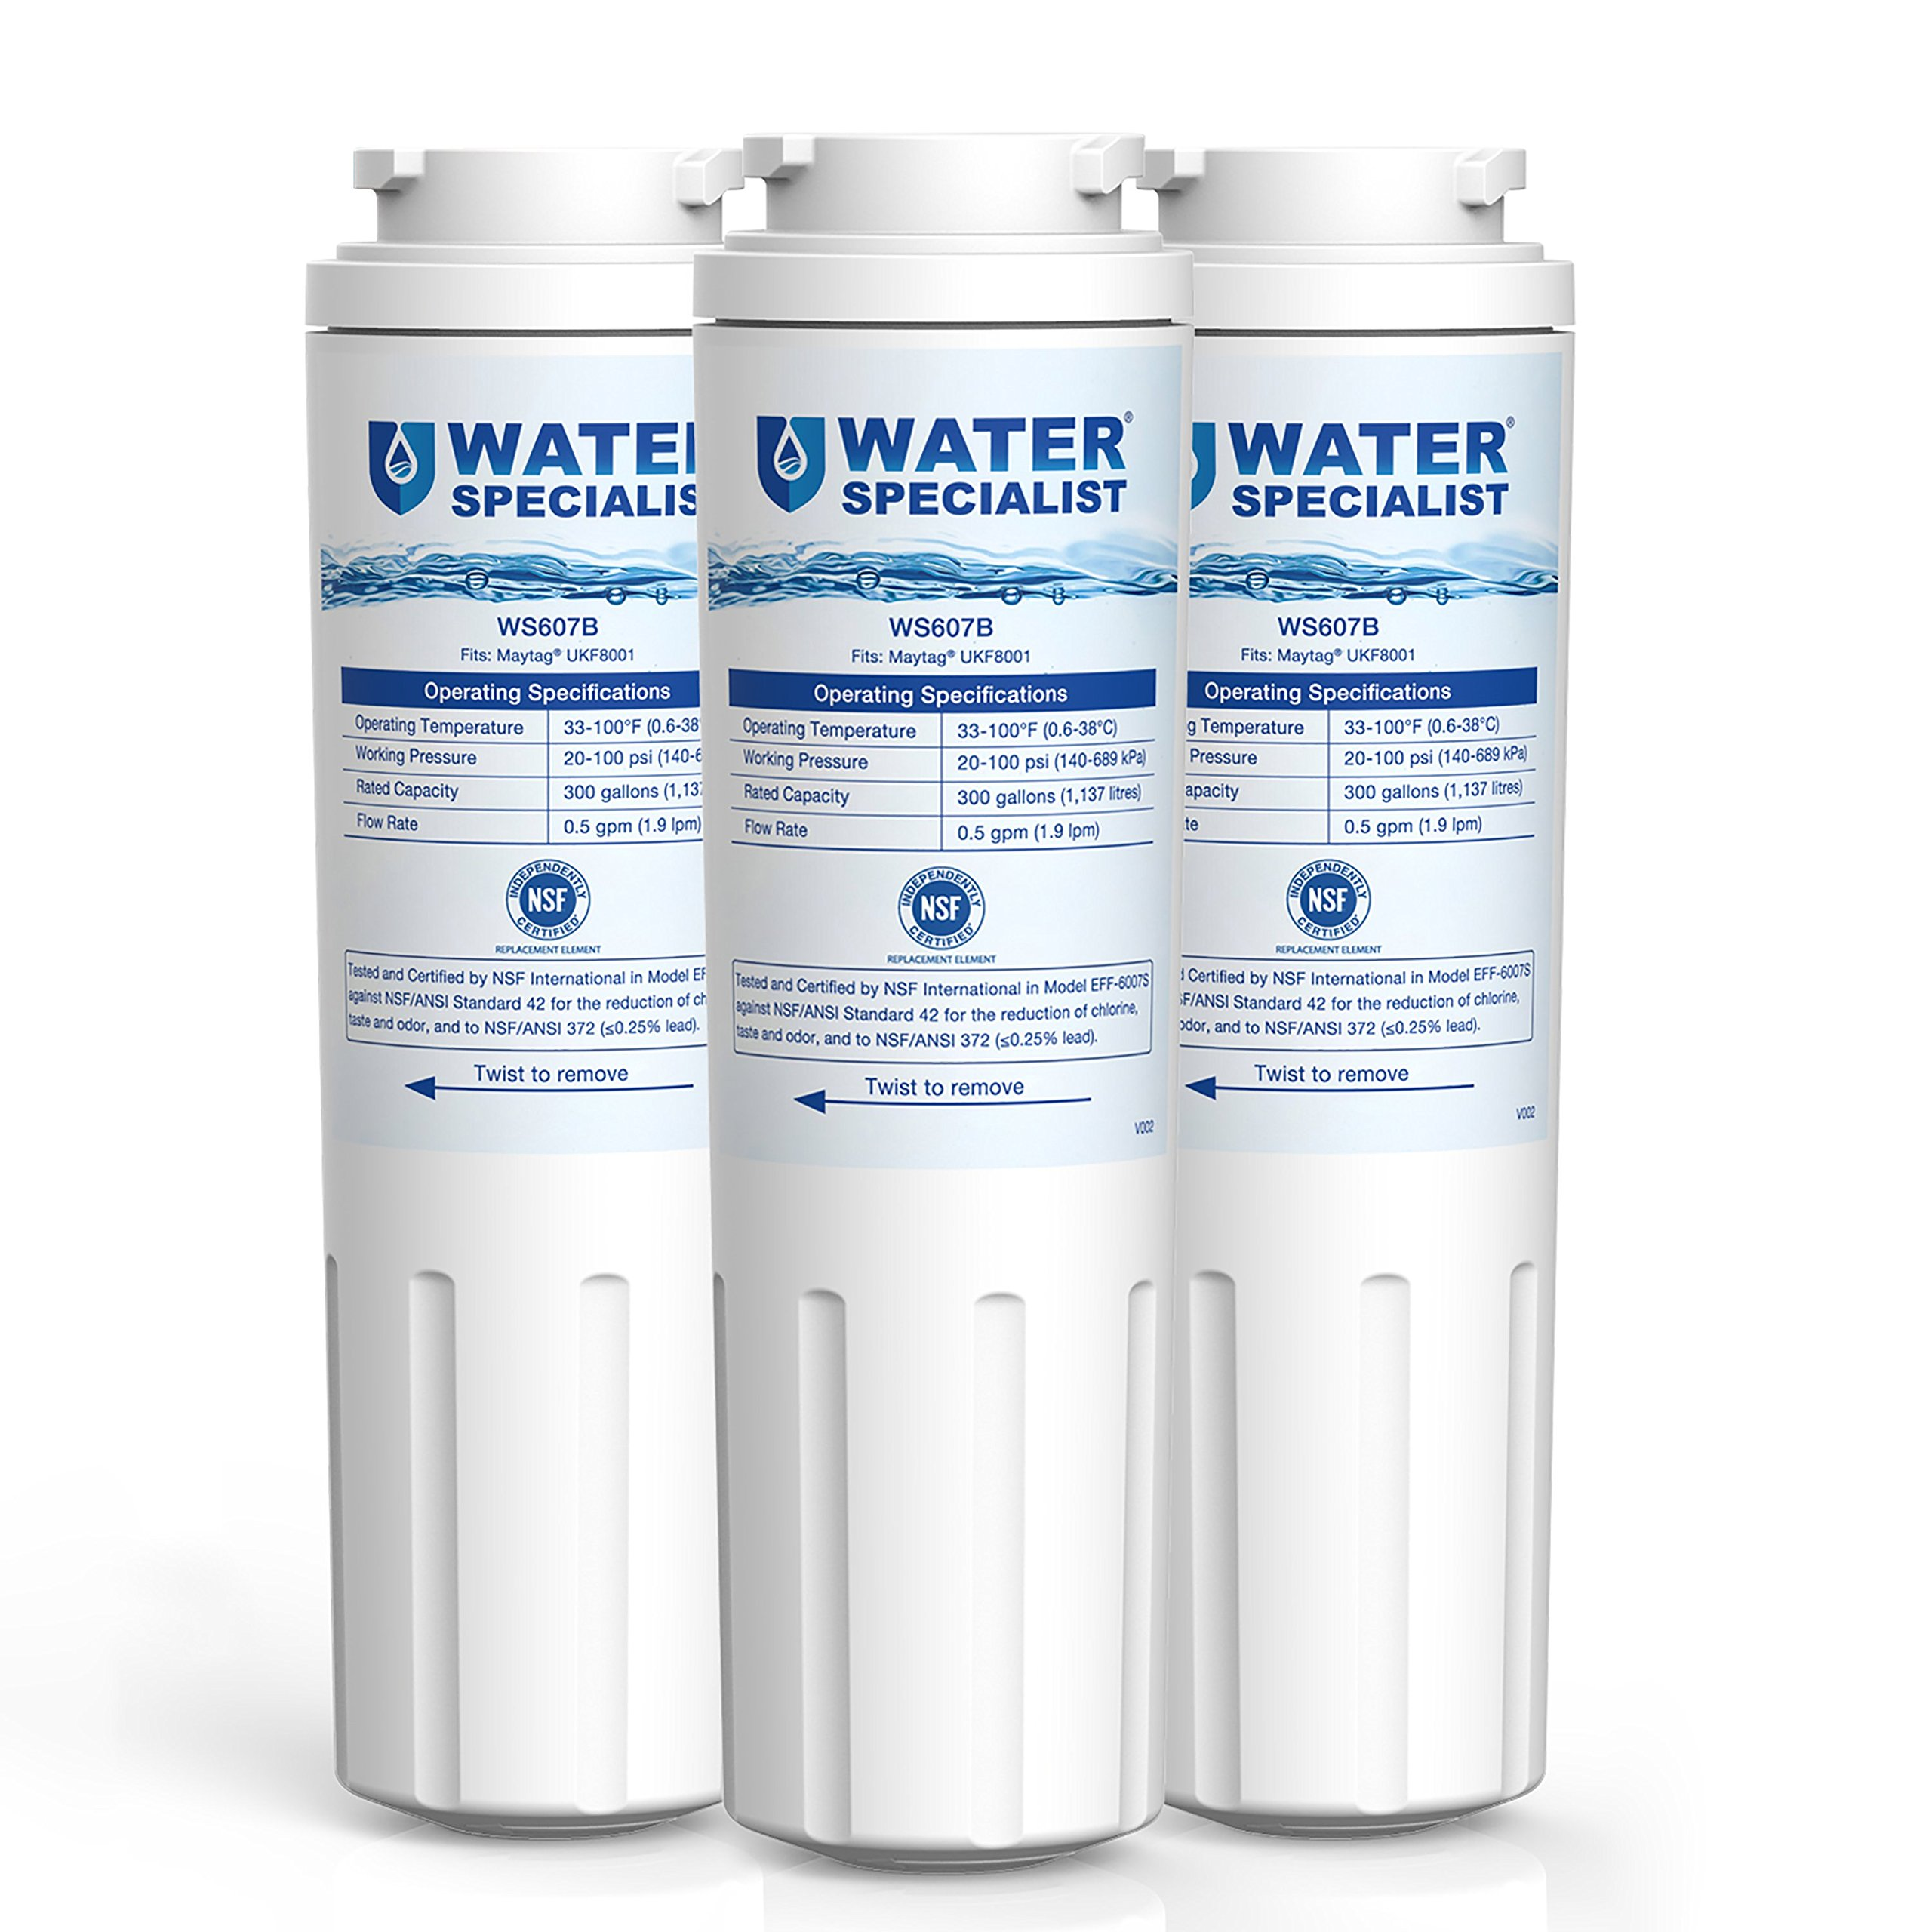 Waterspecialist UKF8001 Replacement Refrigerator Water Filter Compatible  with PUR Jenn-Air Maytag UKF8001 EveryDrop Filter 4 Whirlpool 4396395